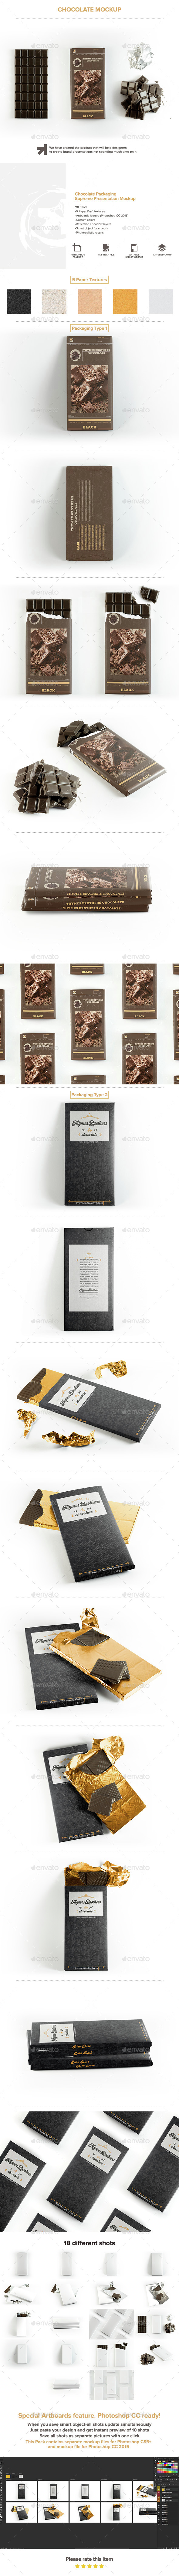 Chocolate Bar Packaging Mockup - Food and Drink Packaging